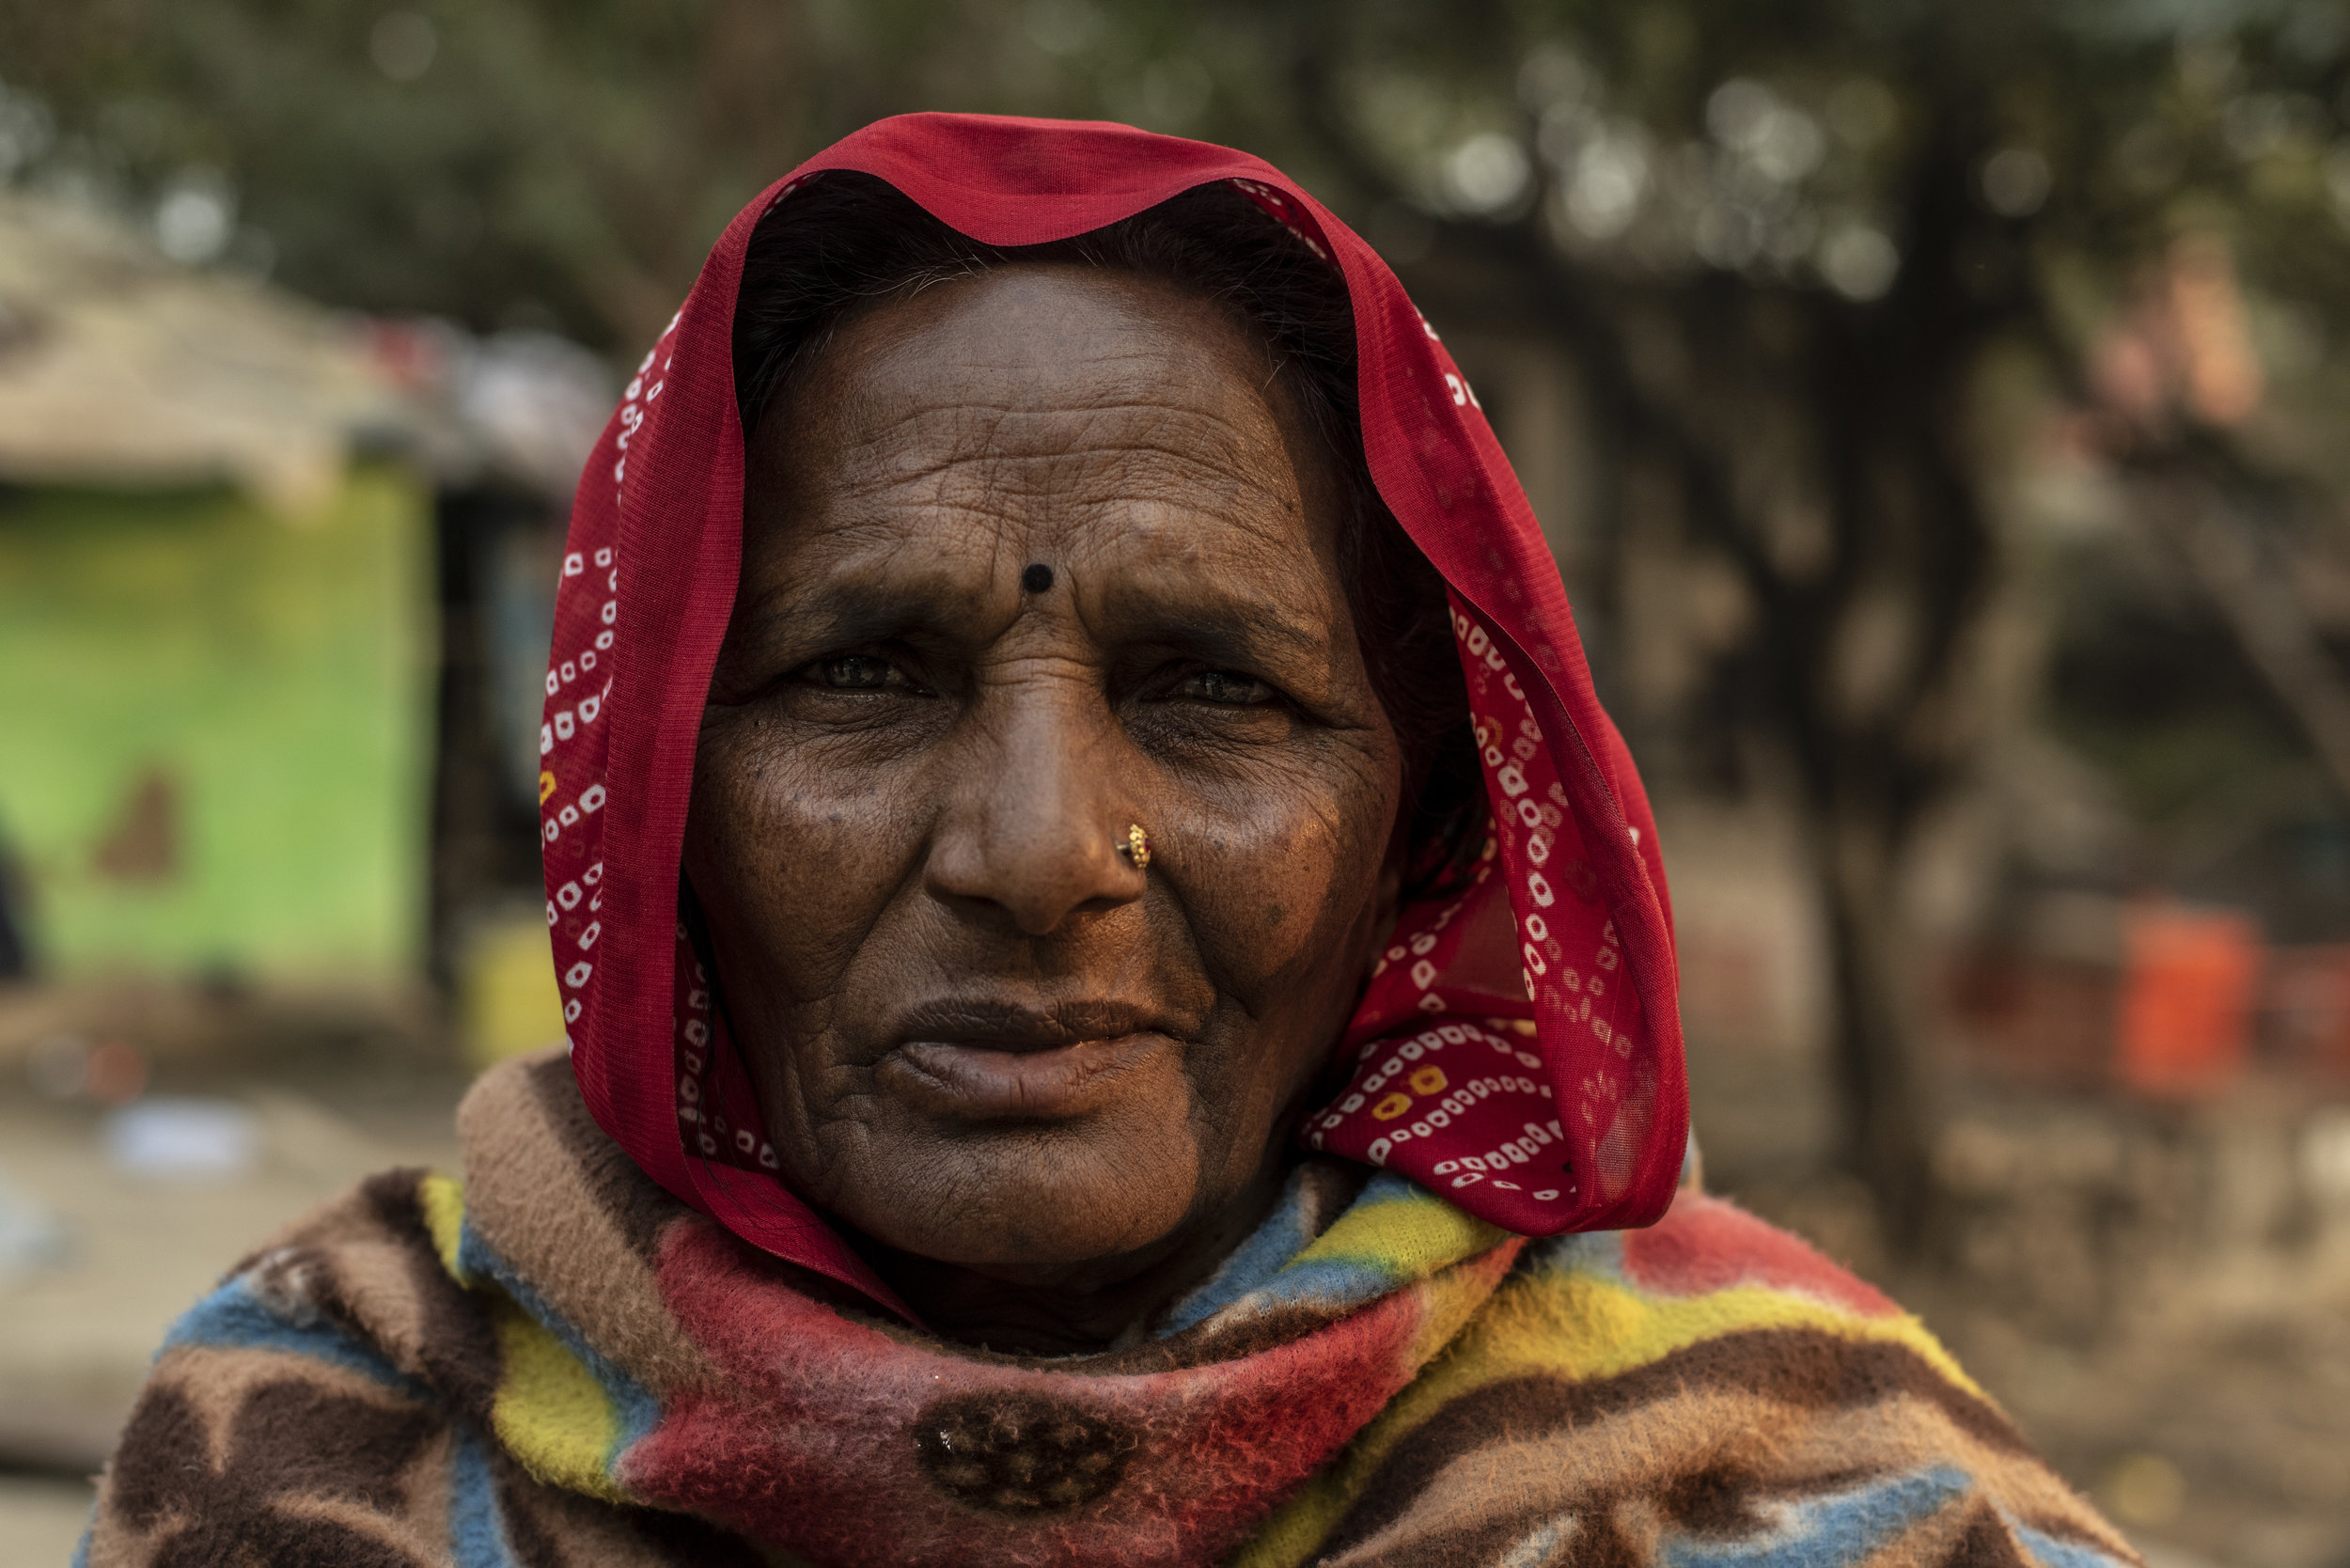 Chanda Devi, age 70, lives in a small swampy copse just outside of Sangam with her children and grandchildren.